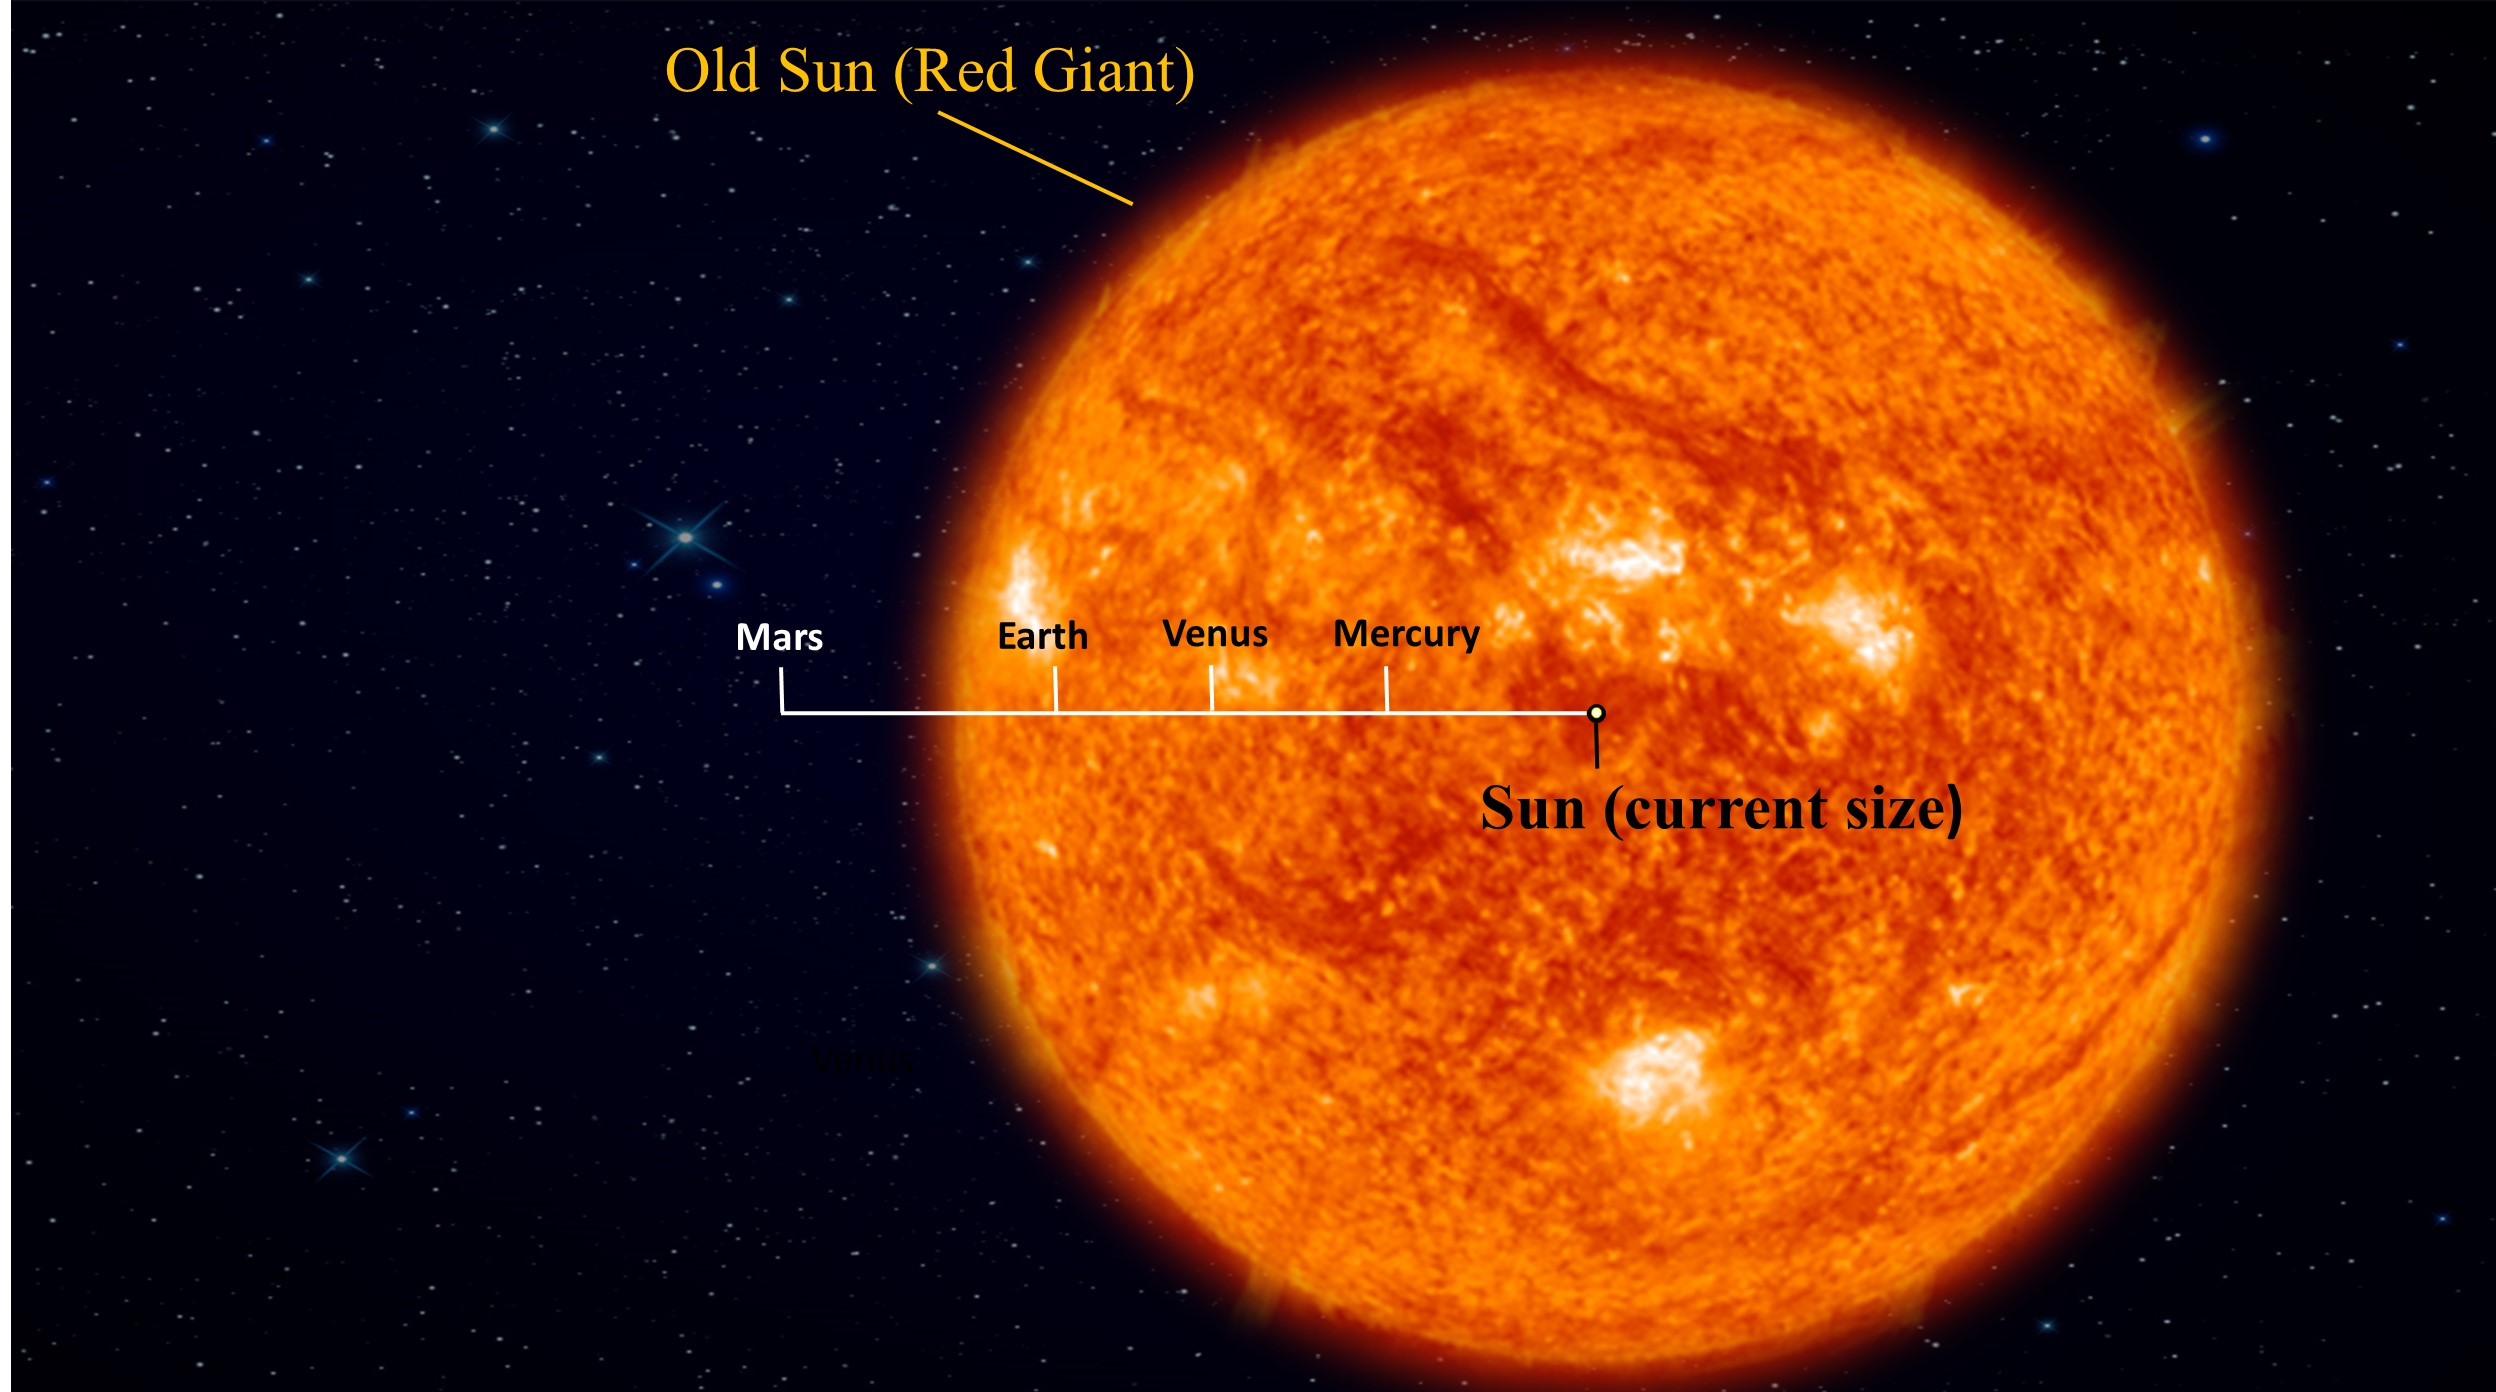 Aging Stars Could Host Earth Like Planets In Outer Regions